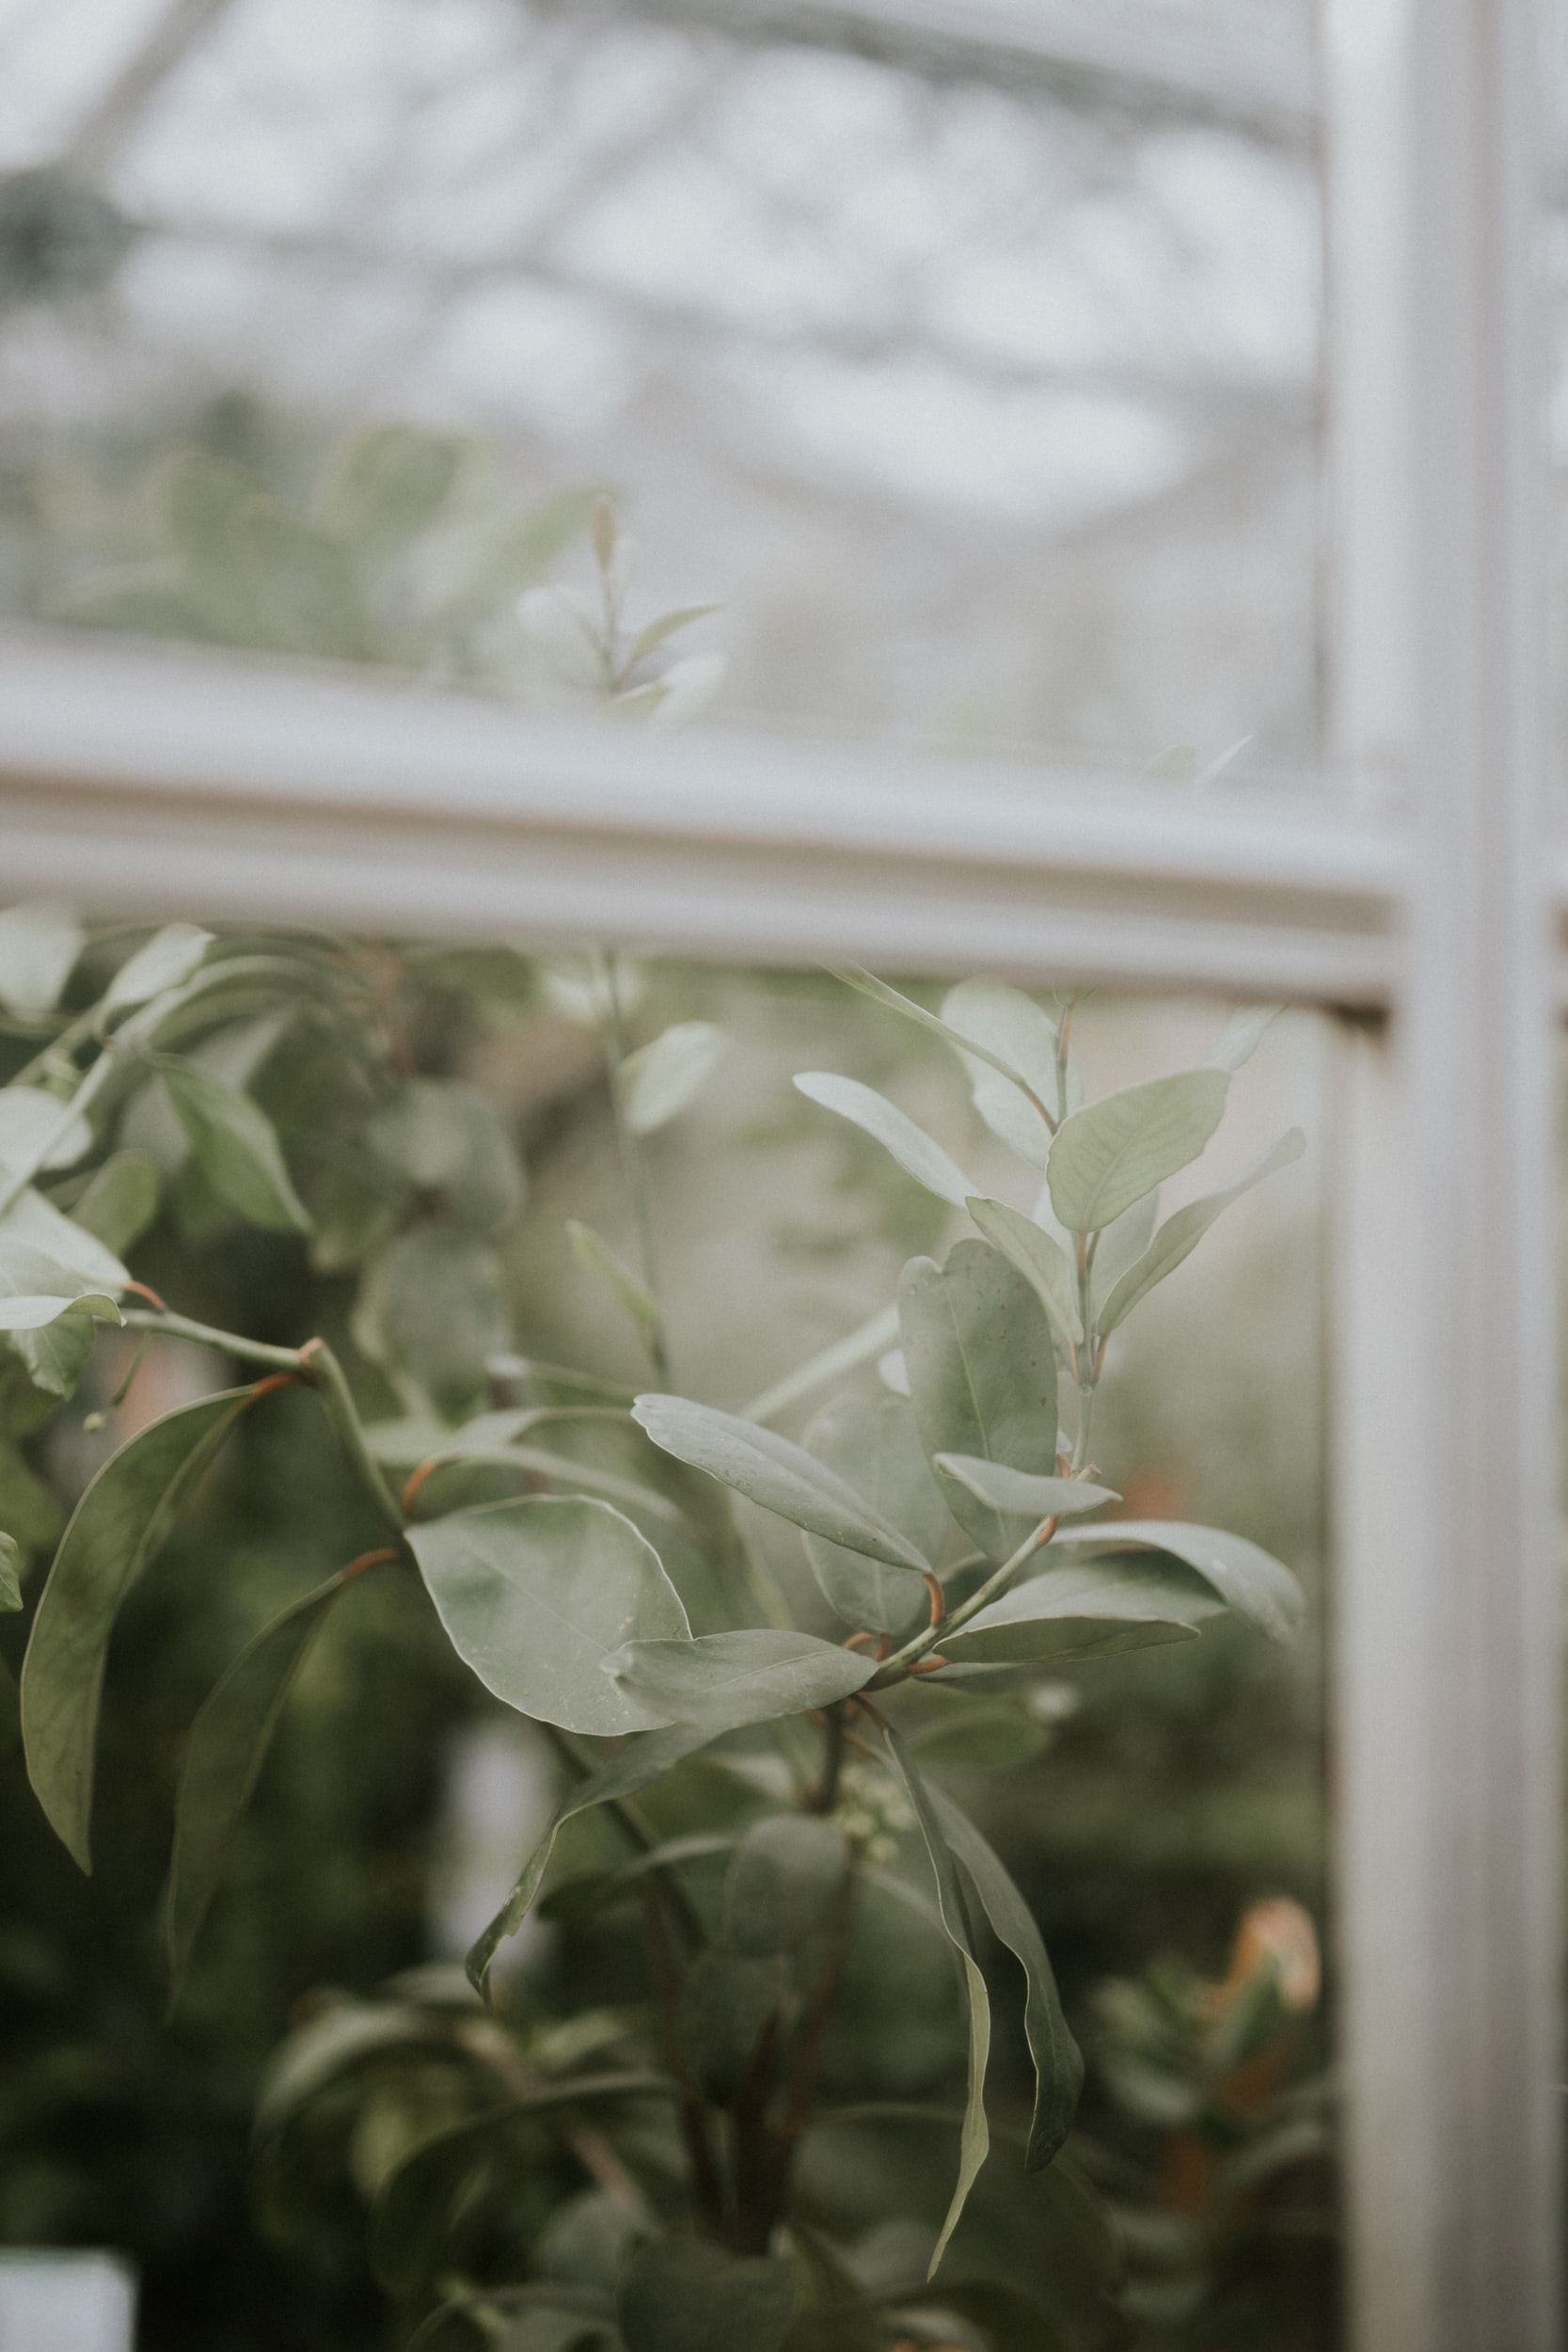 Branches with green ovate leaves seen through a window pane